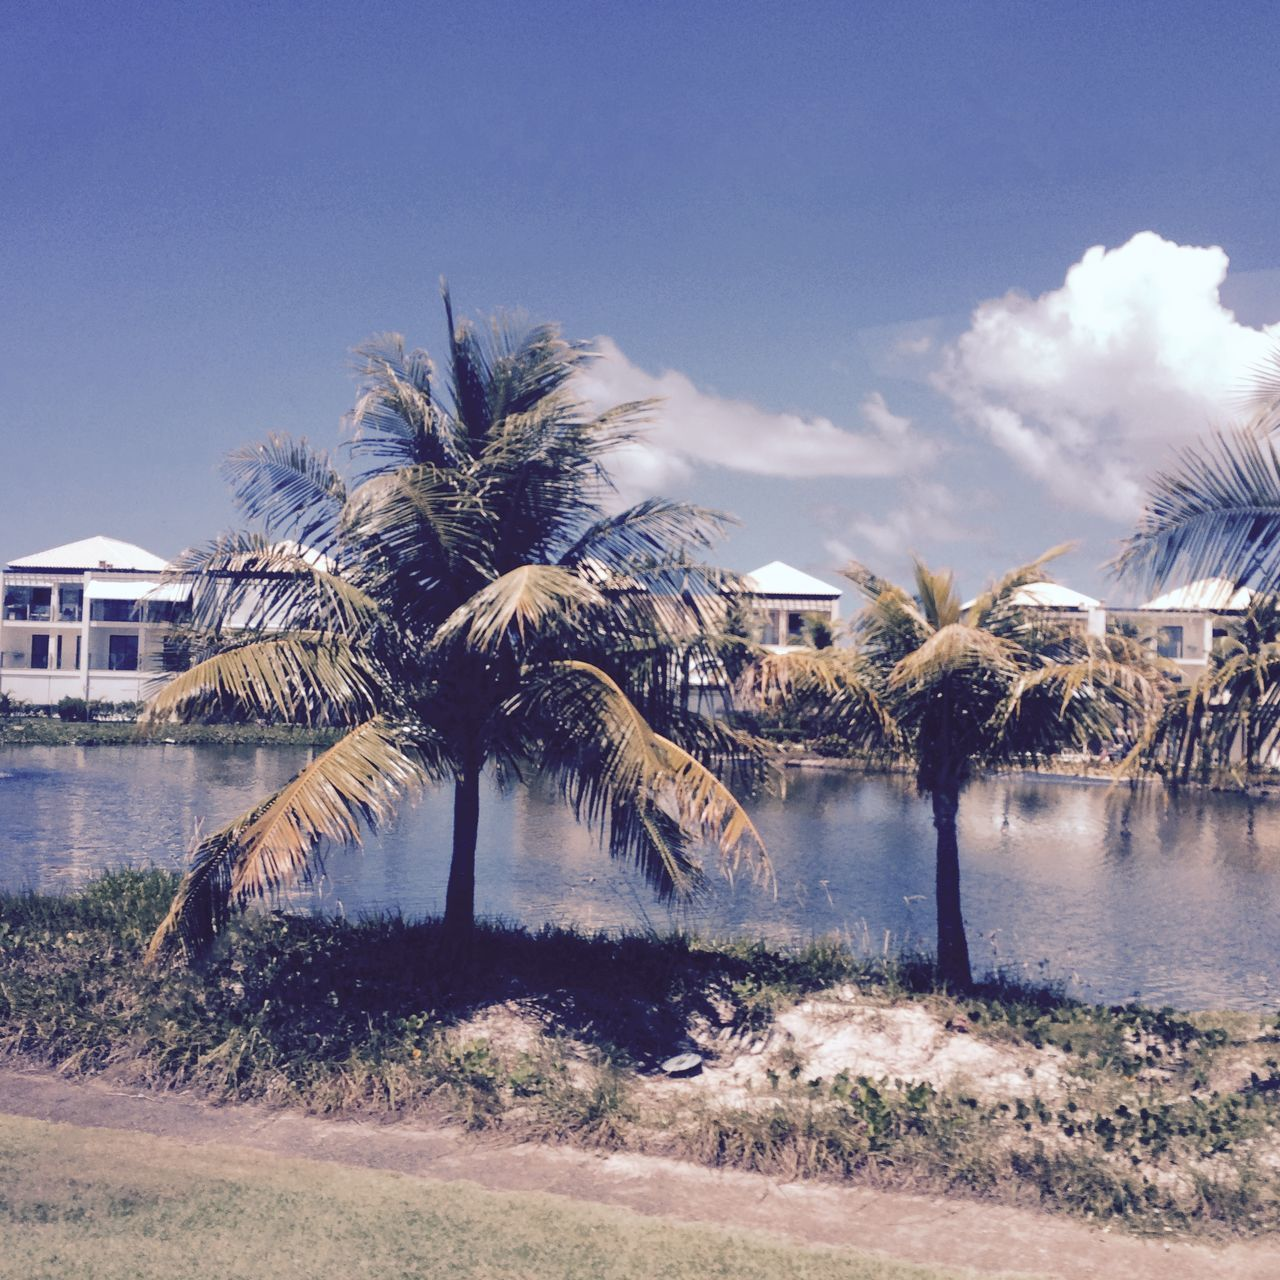 palm tree, tree, water, nature, day, outdoors, beauty in nature, sky, no people, scenics, architecture, building exterior